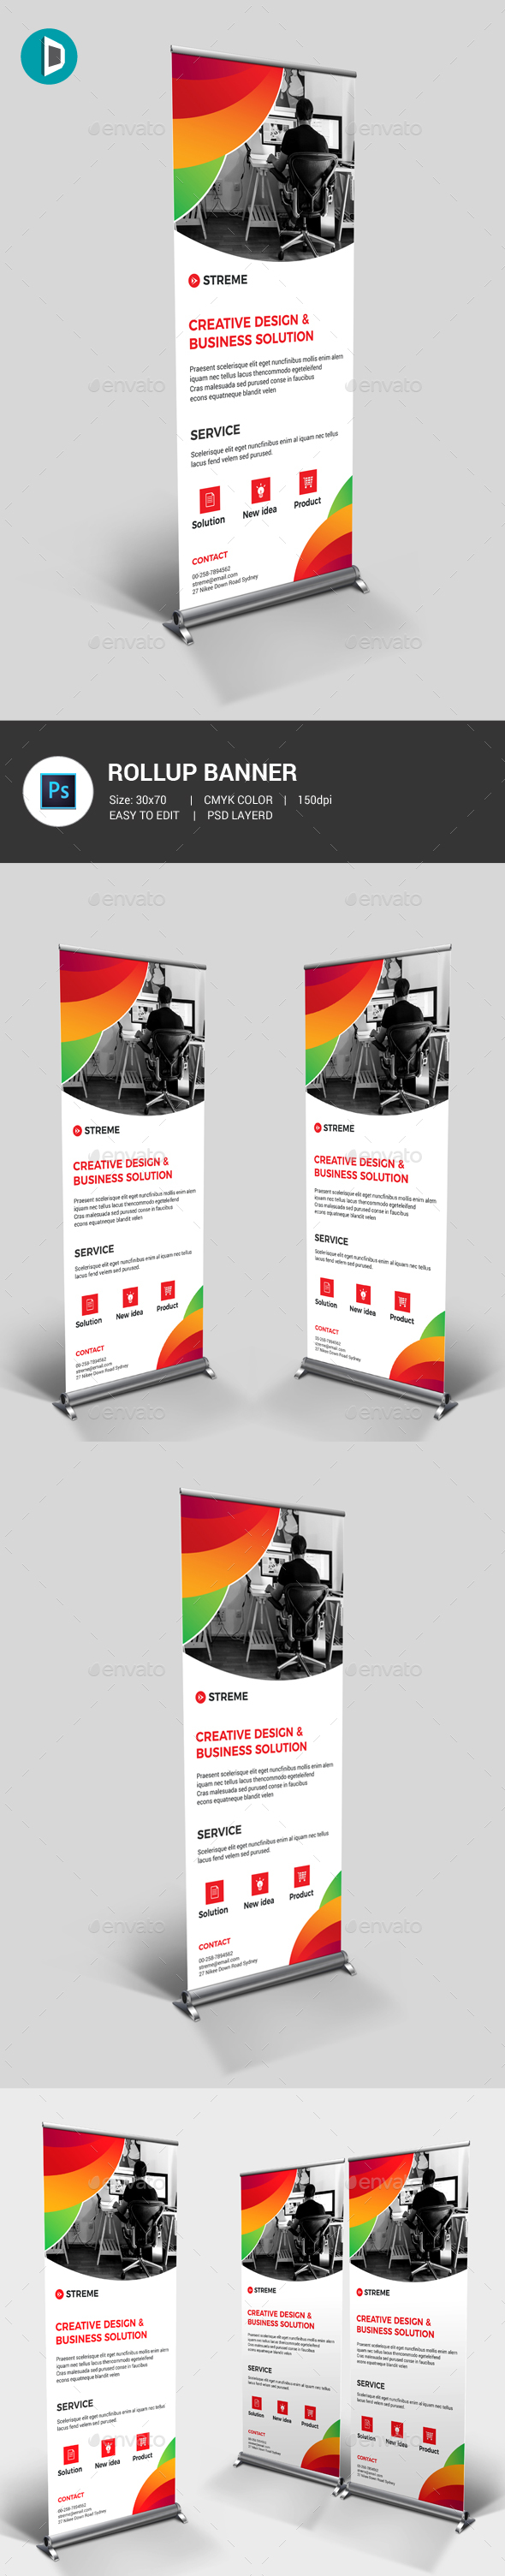 GraphicRiver Roll-Up Banner 20897536